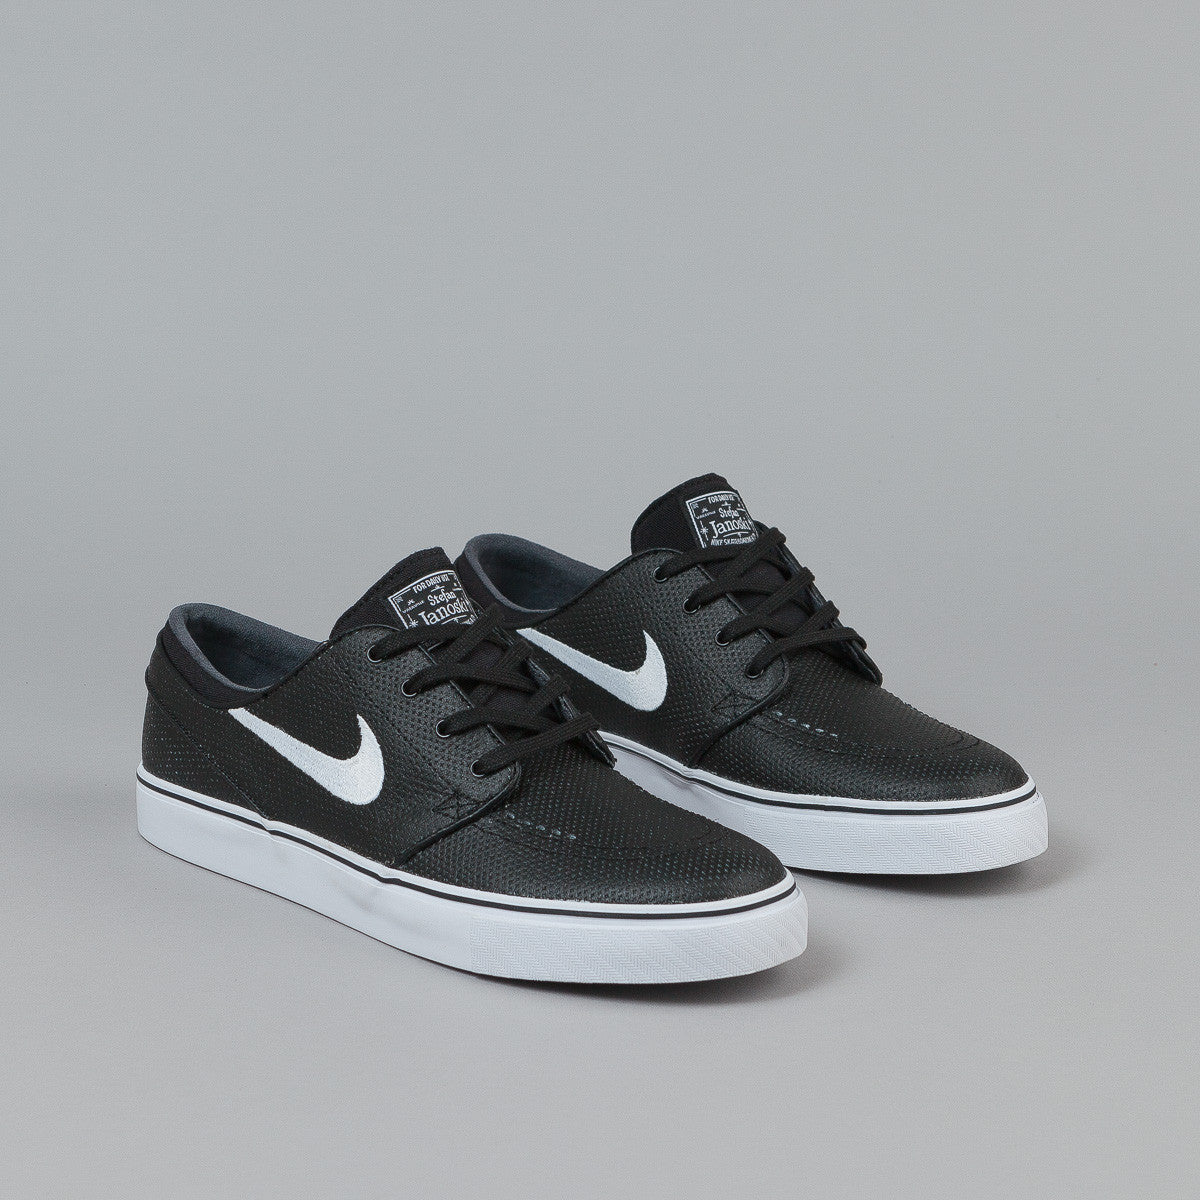 Nike SB Stefan Janoski L Shoes - Black / White - Wolf Grey